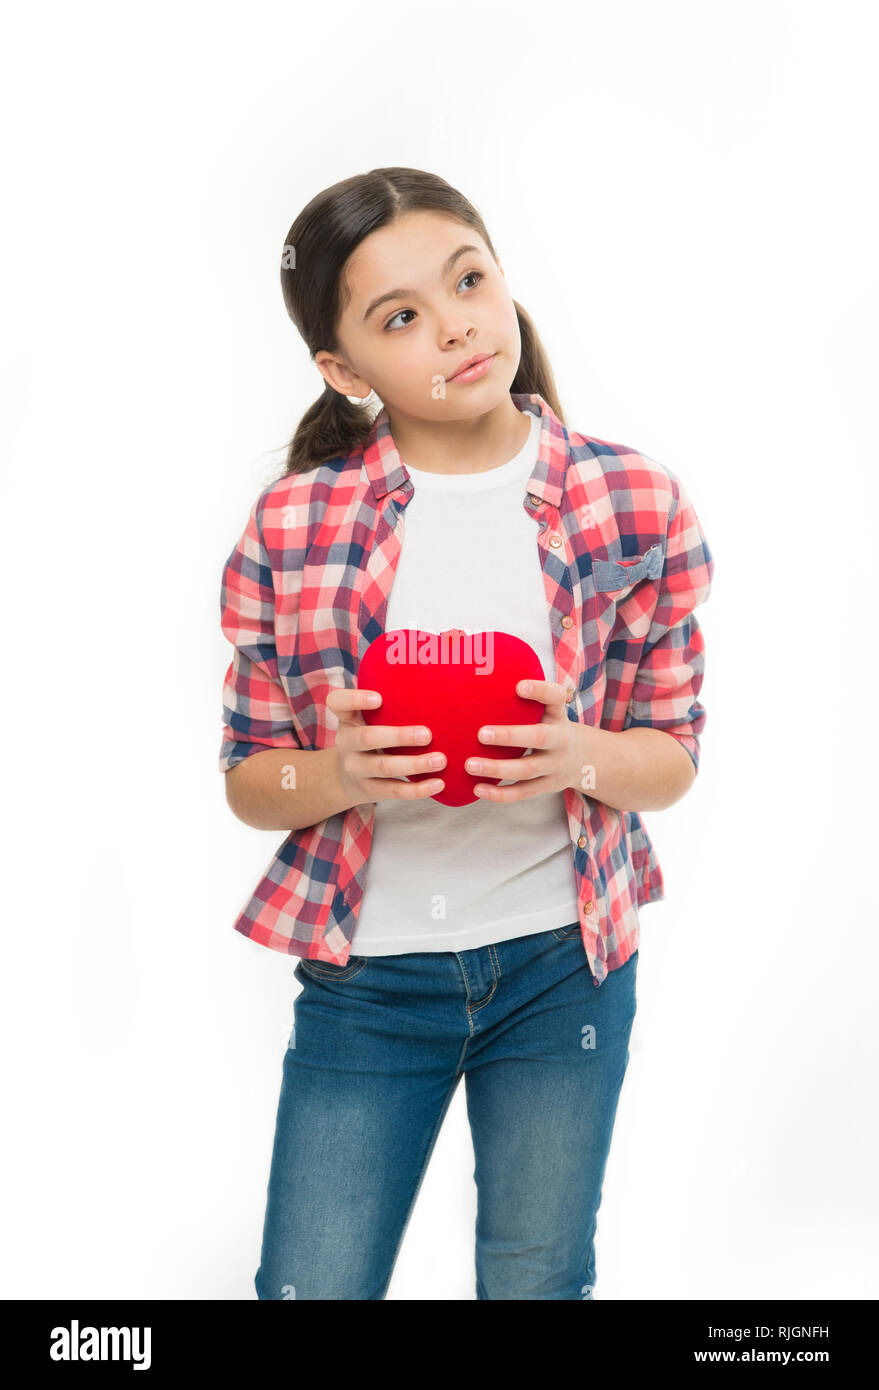 Red heart attribute of valentine. Heart gift or present. Me to you. Greeting from sincere heart. Girl cute child hold heart symbol love. Celebrate valentines day. Love and romantic feelings concept. - Stock Image